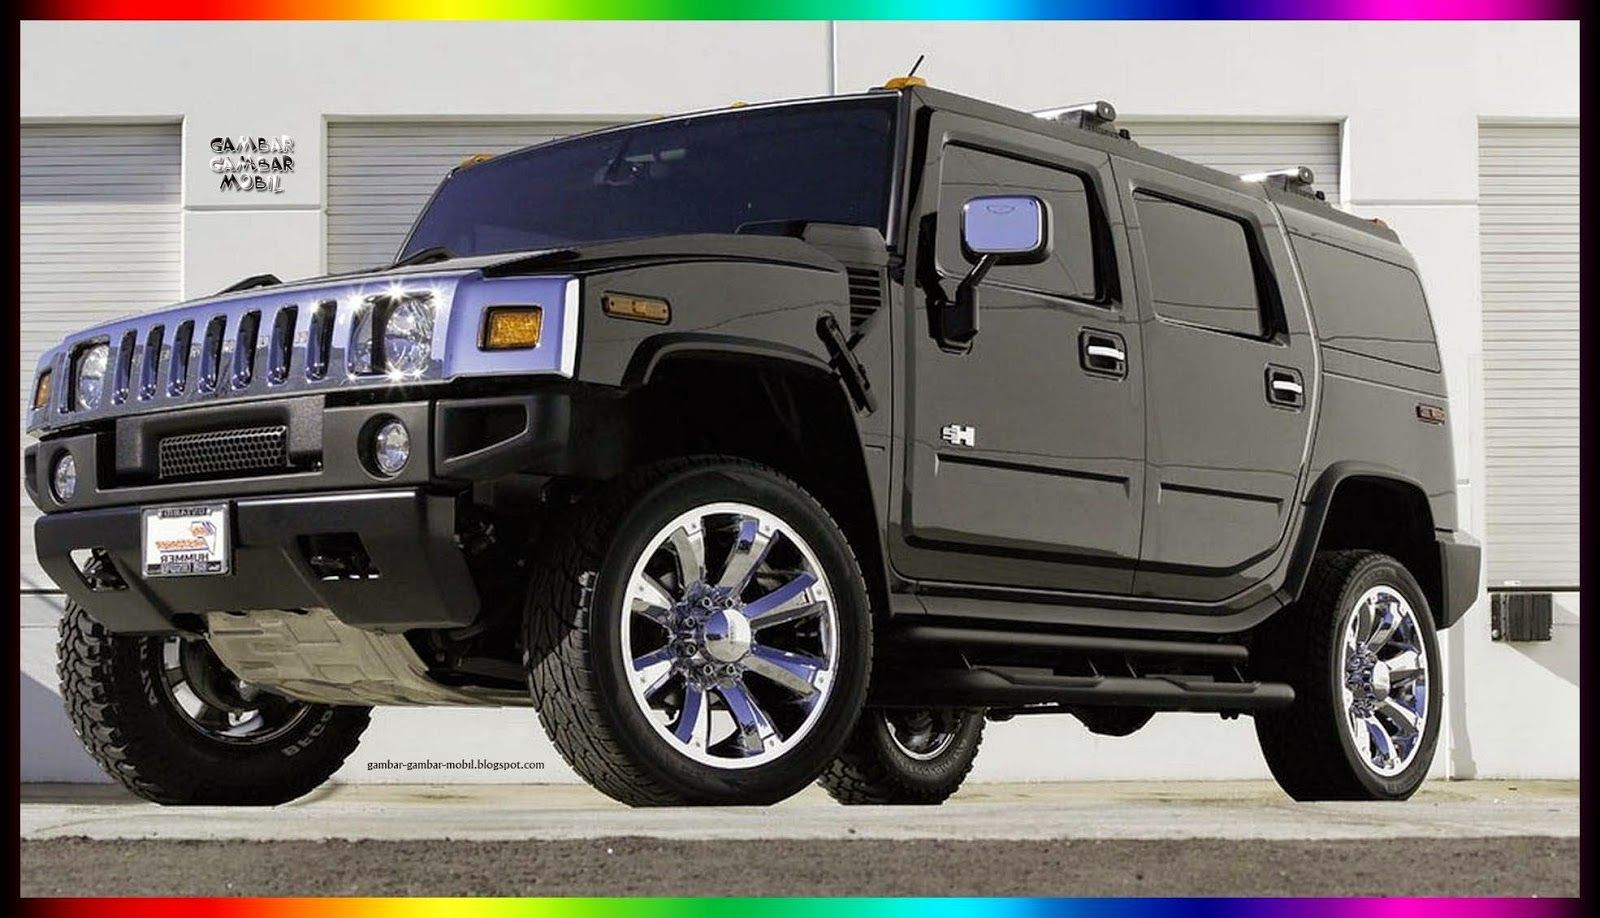 gambar mobil hammer | Jeep | Pinterest | Hummer h2 and Jeeps